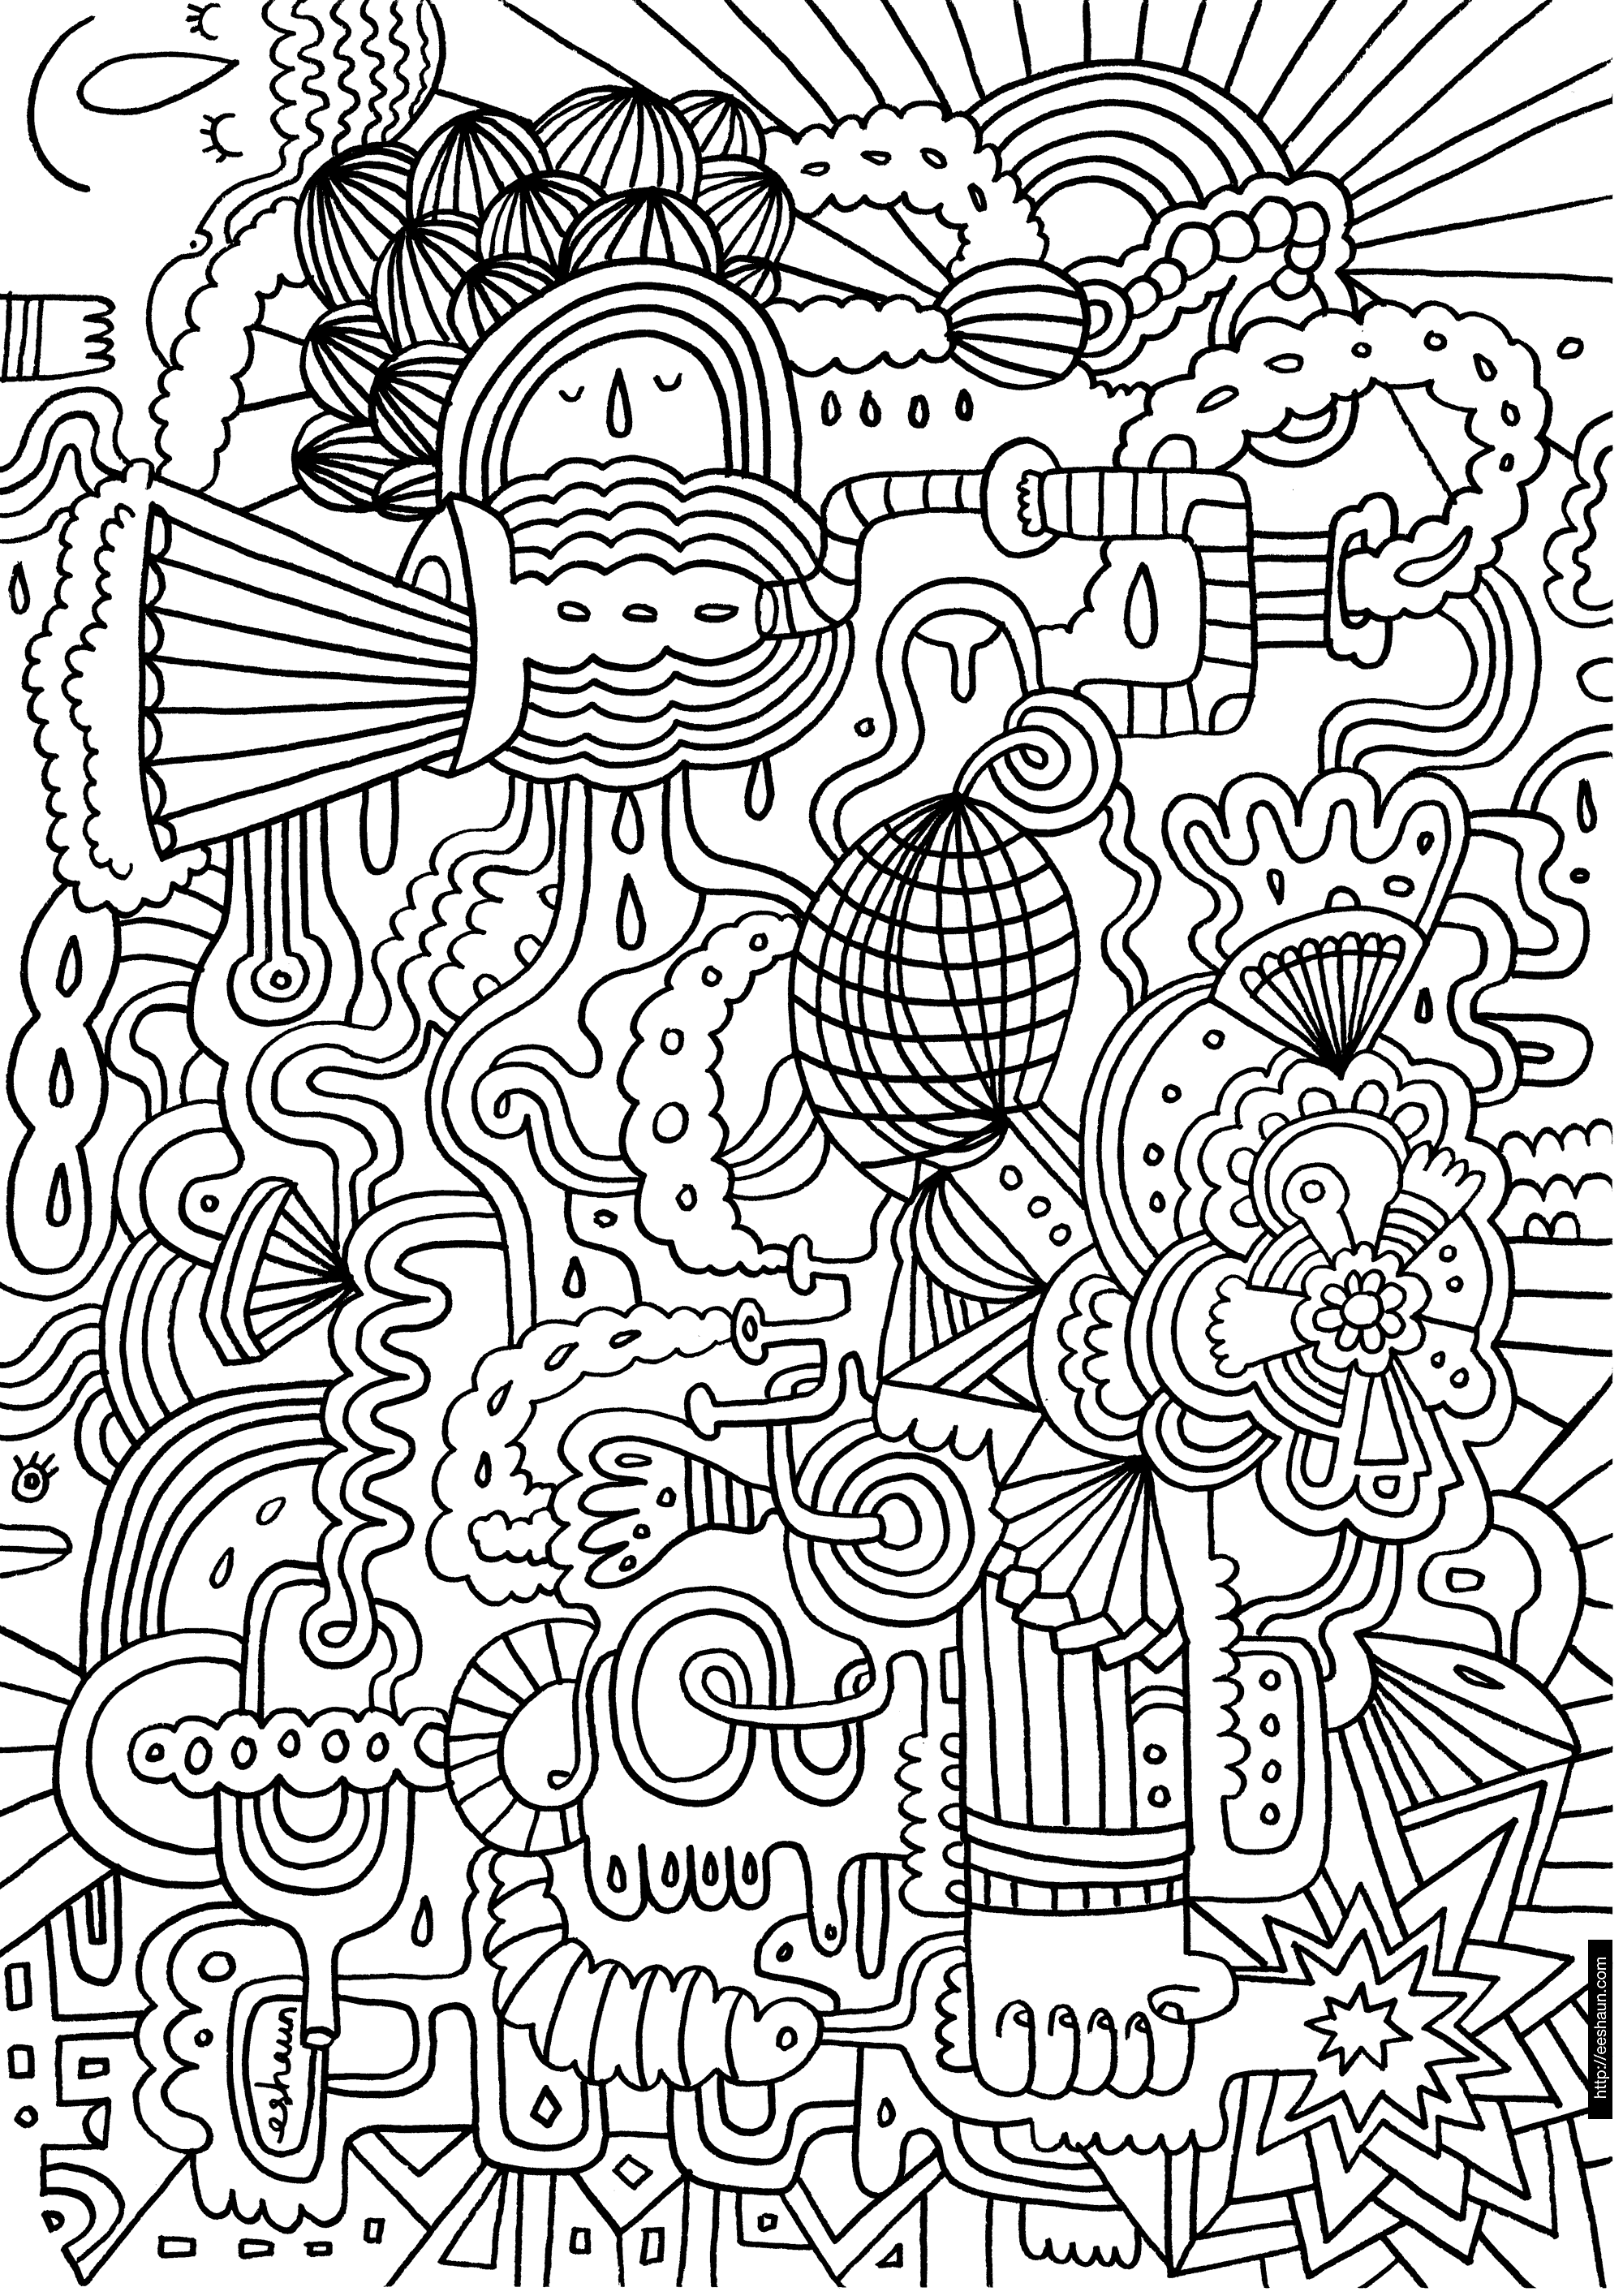 hard coloring pages - Free Large Images | Adult Coloring ...